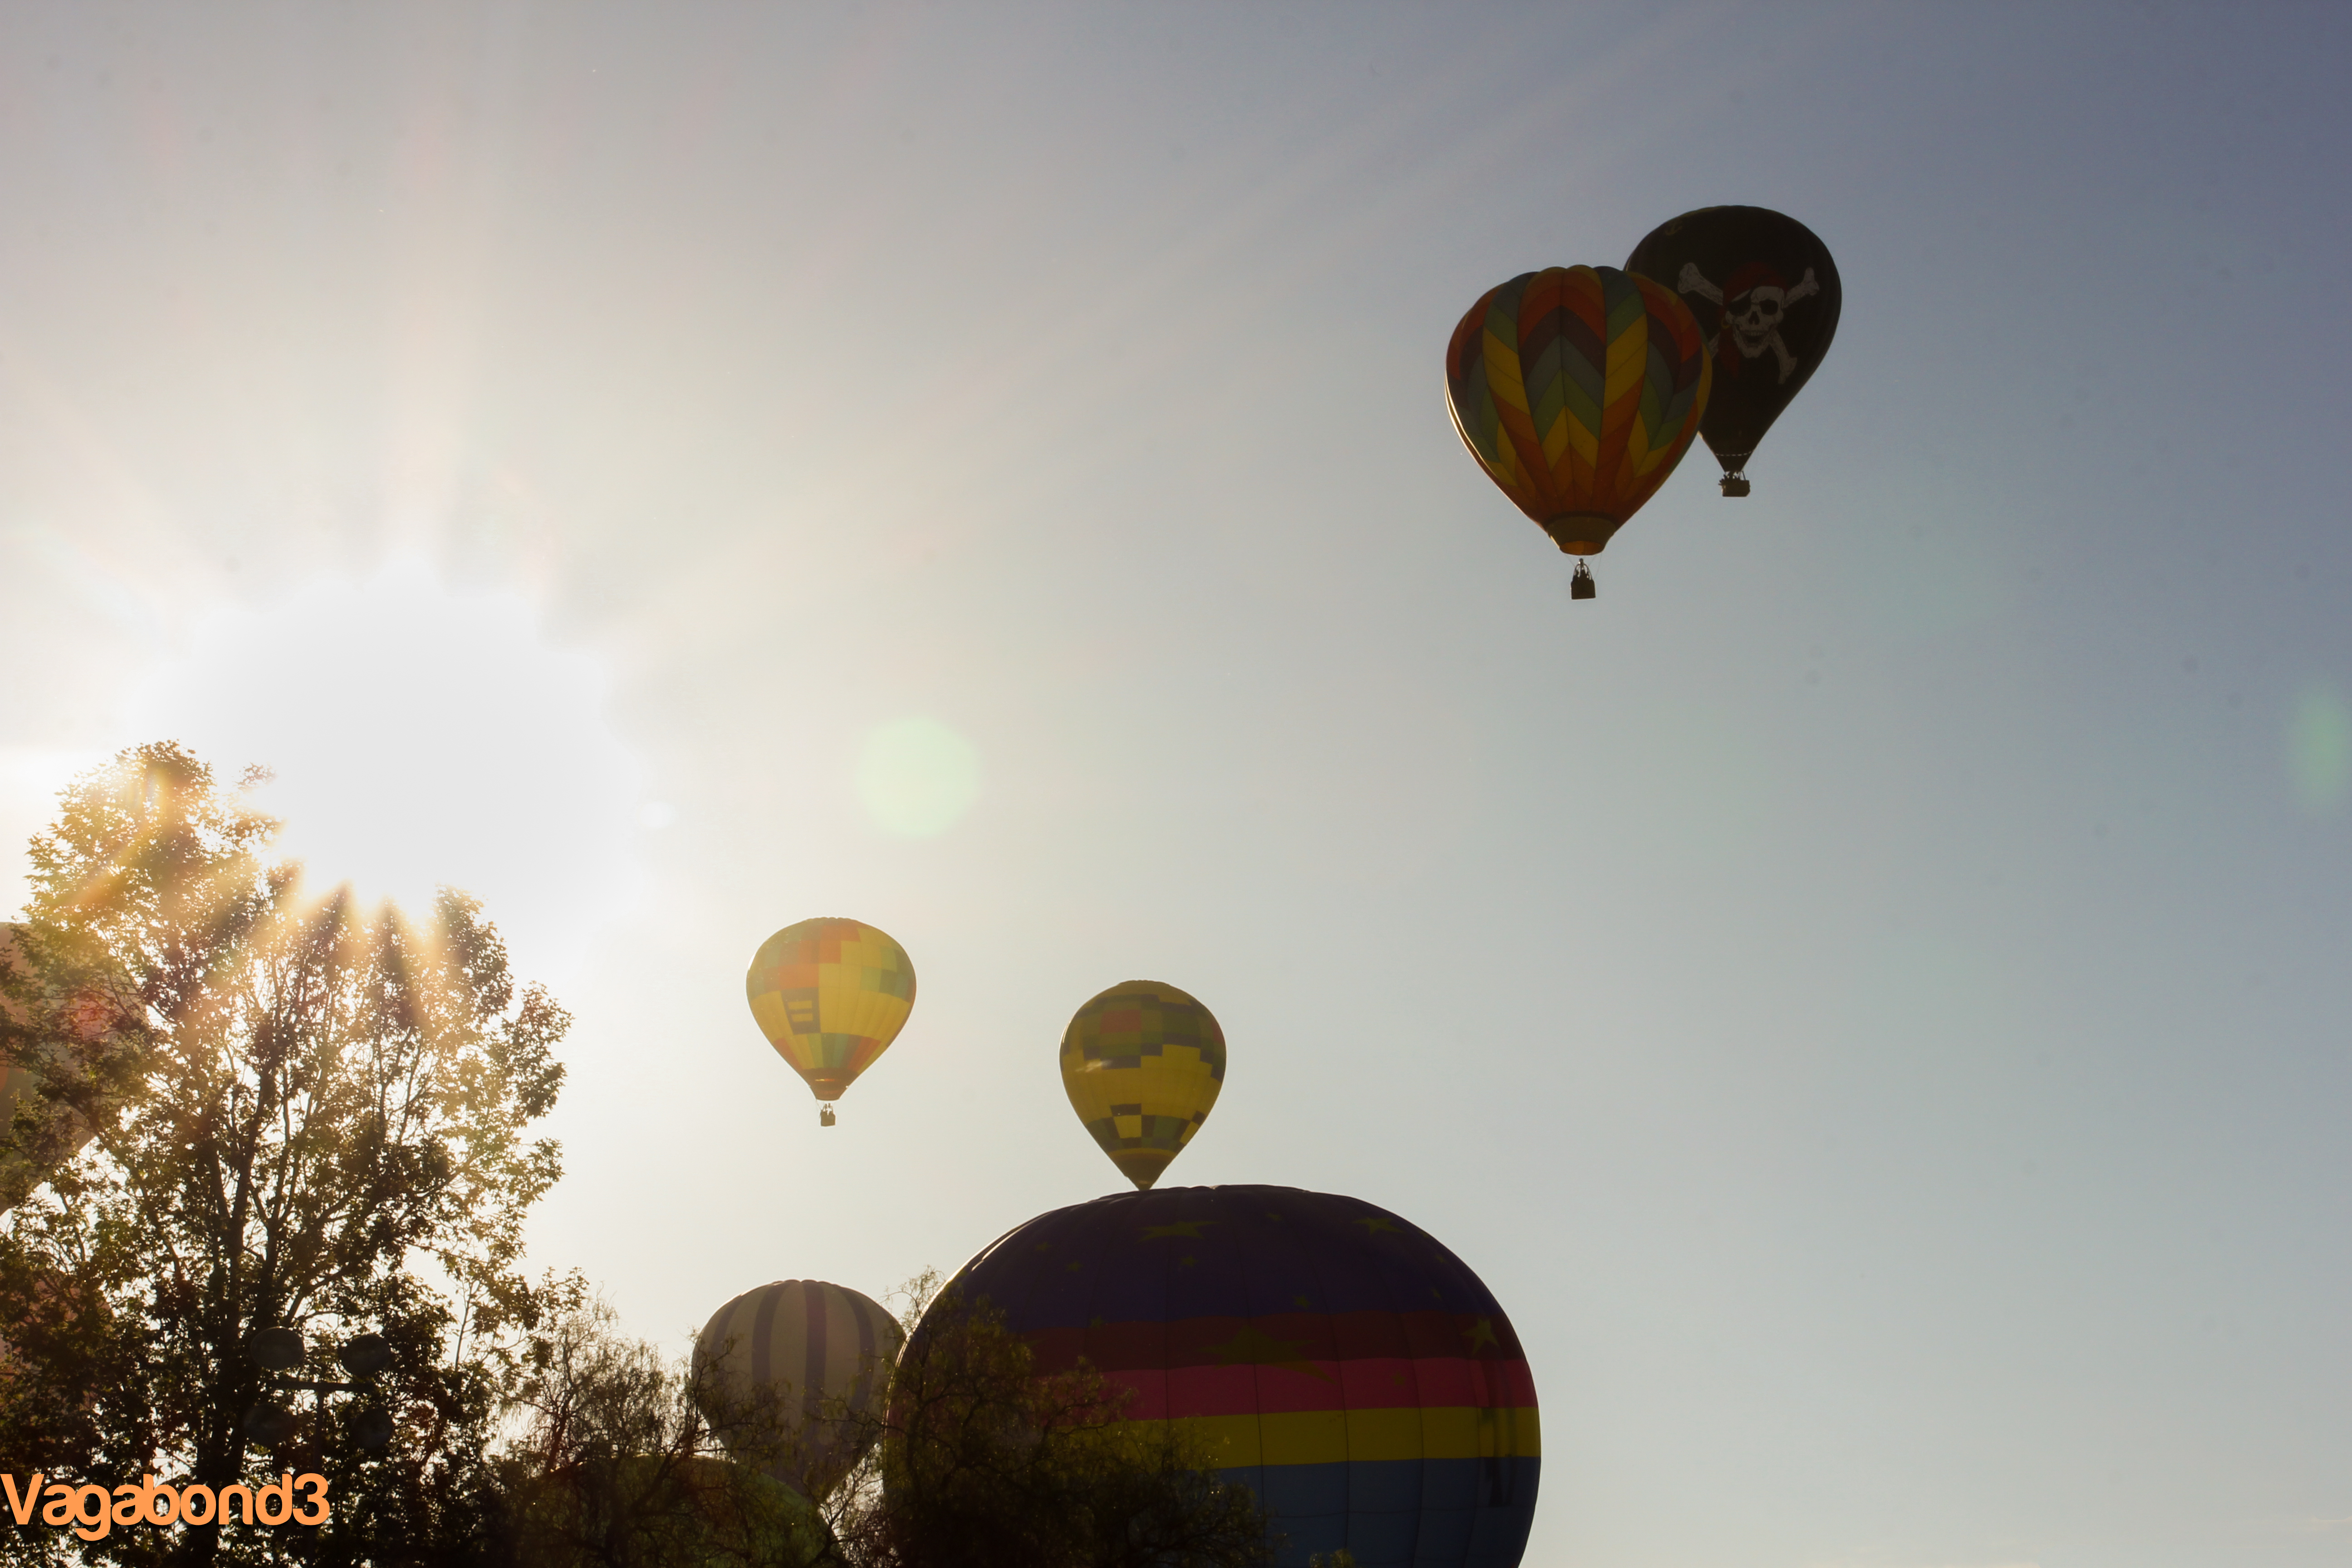 Temecula : A Weekend Away in Pictures